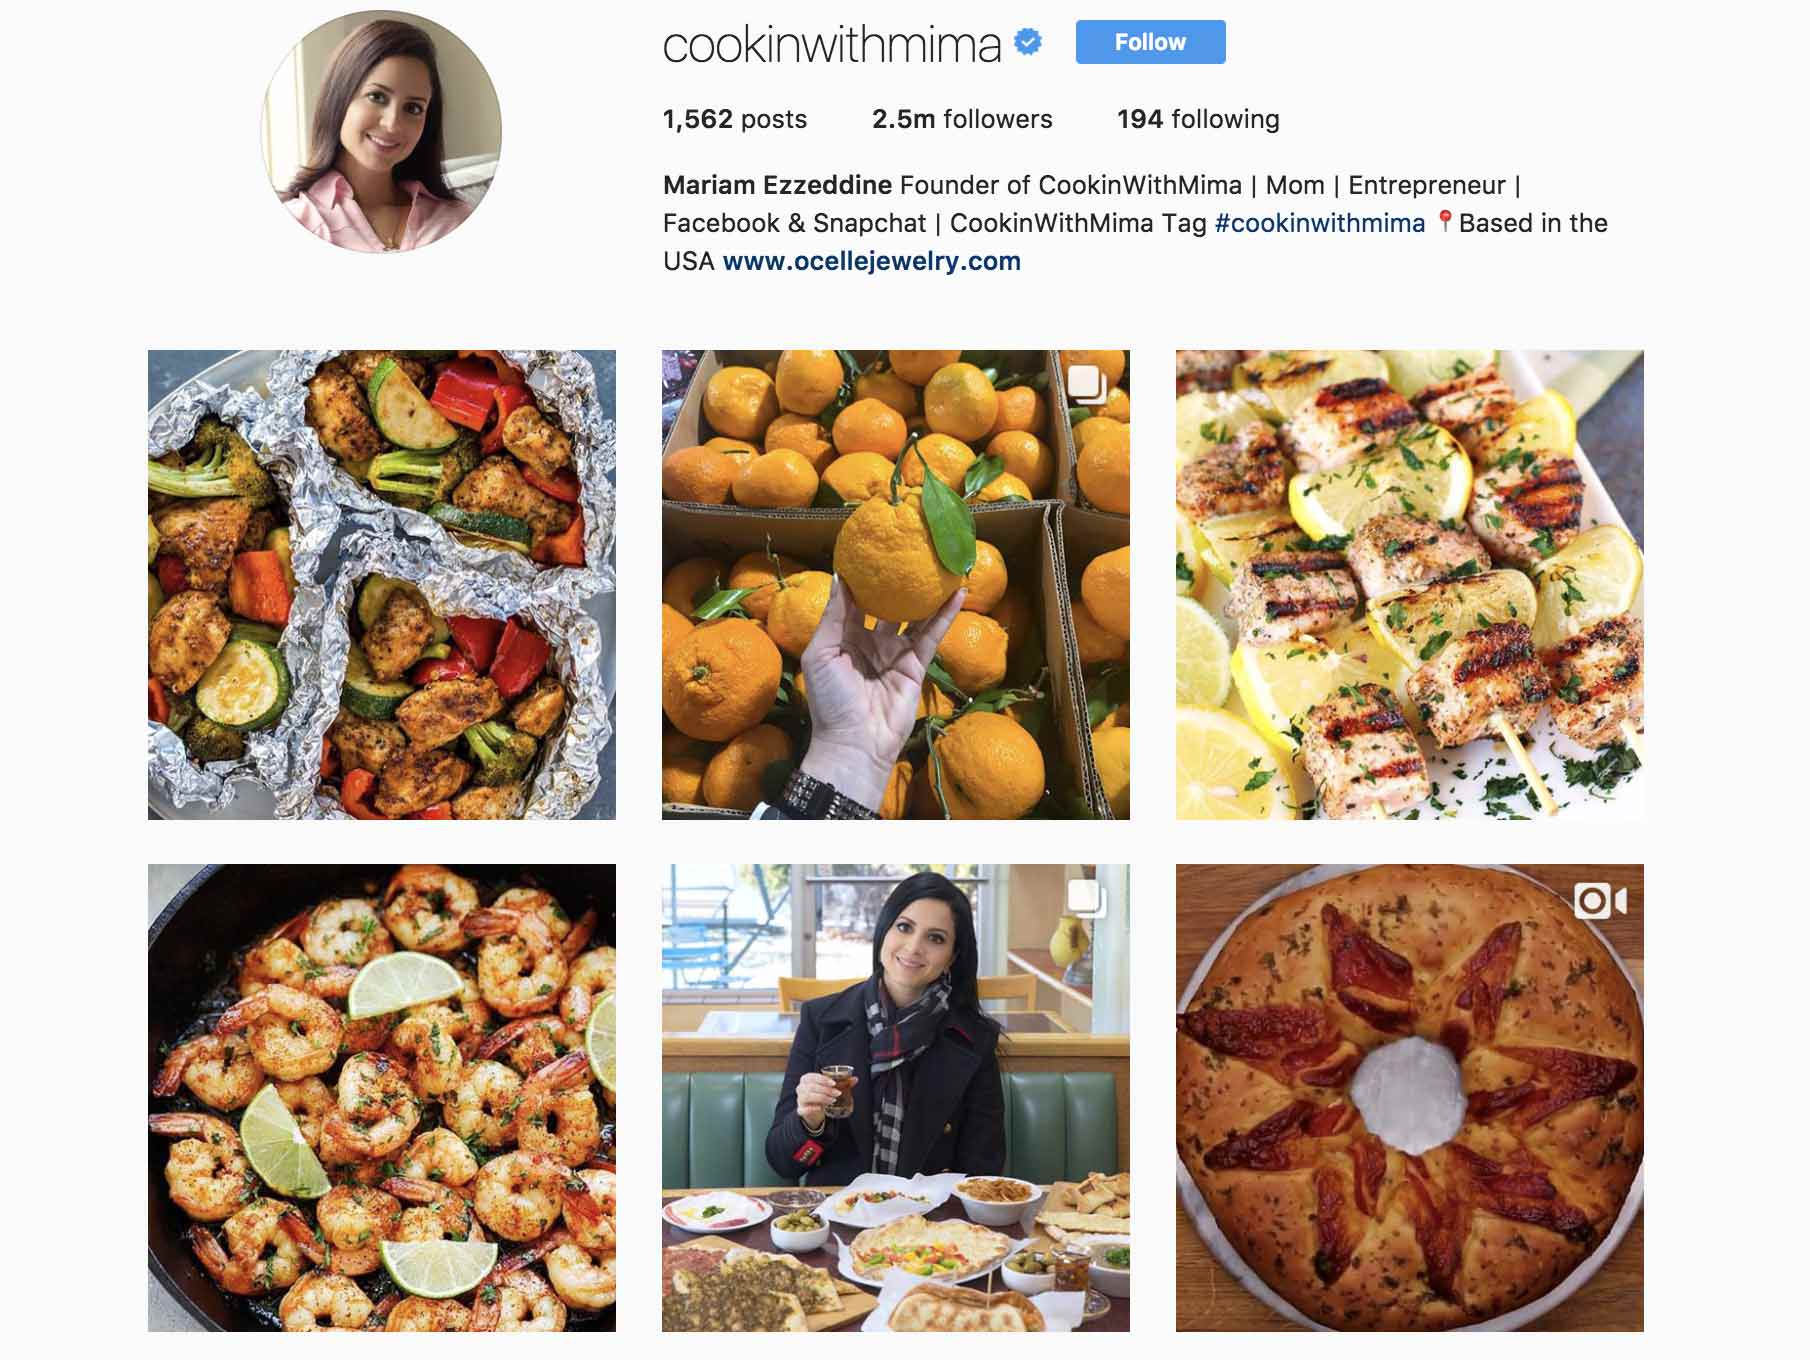 cookin-with-mima-best-brands-on-instagram